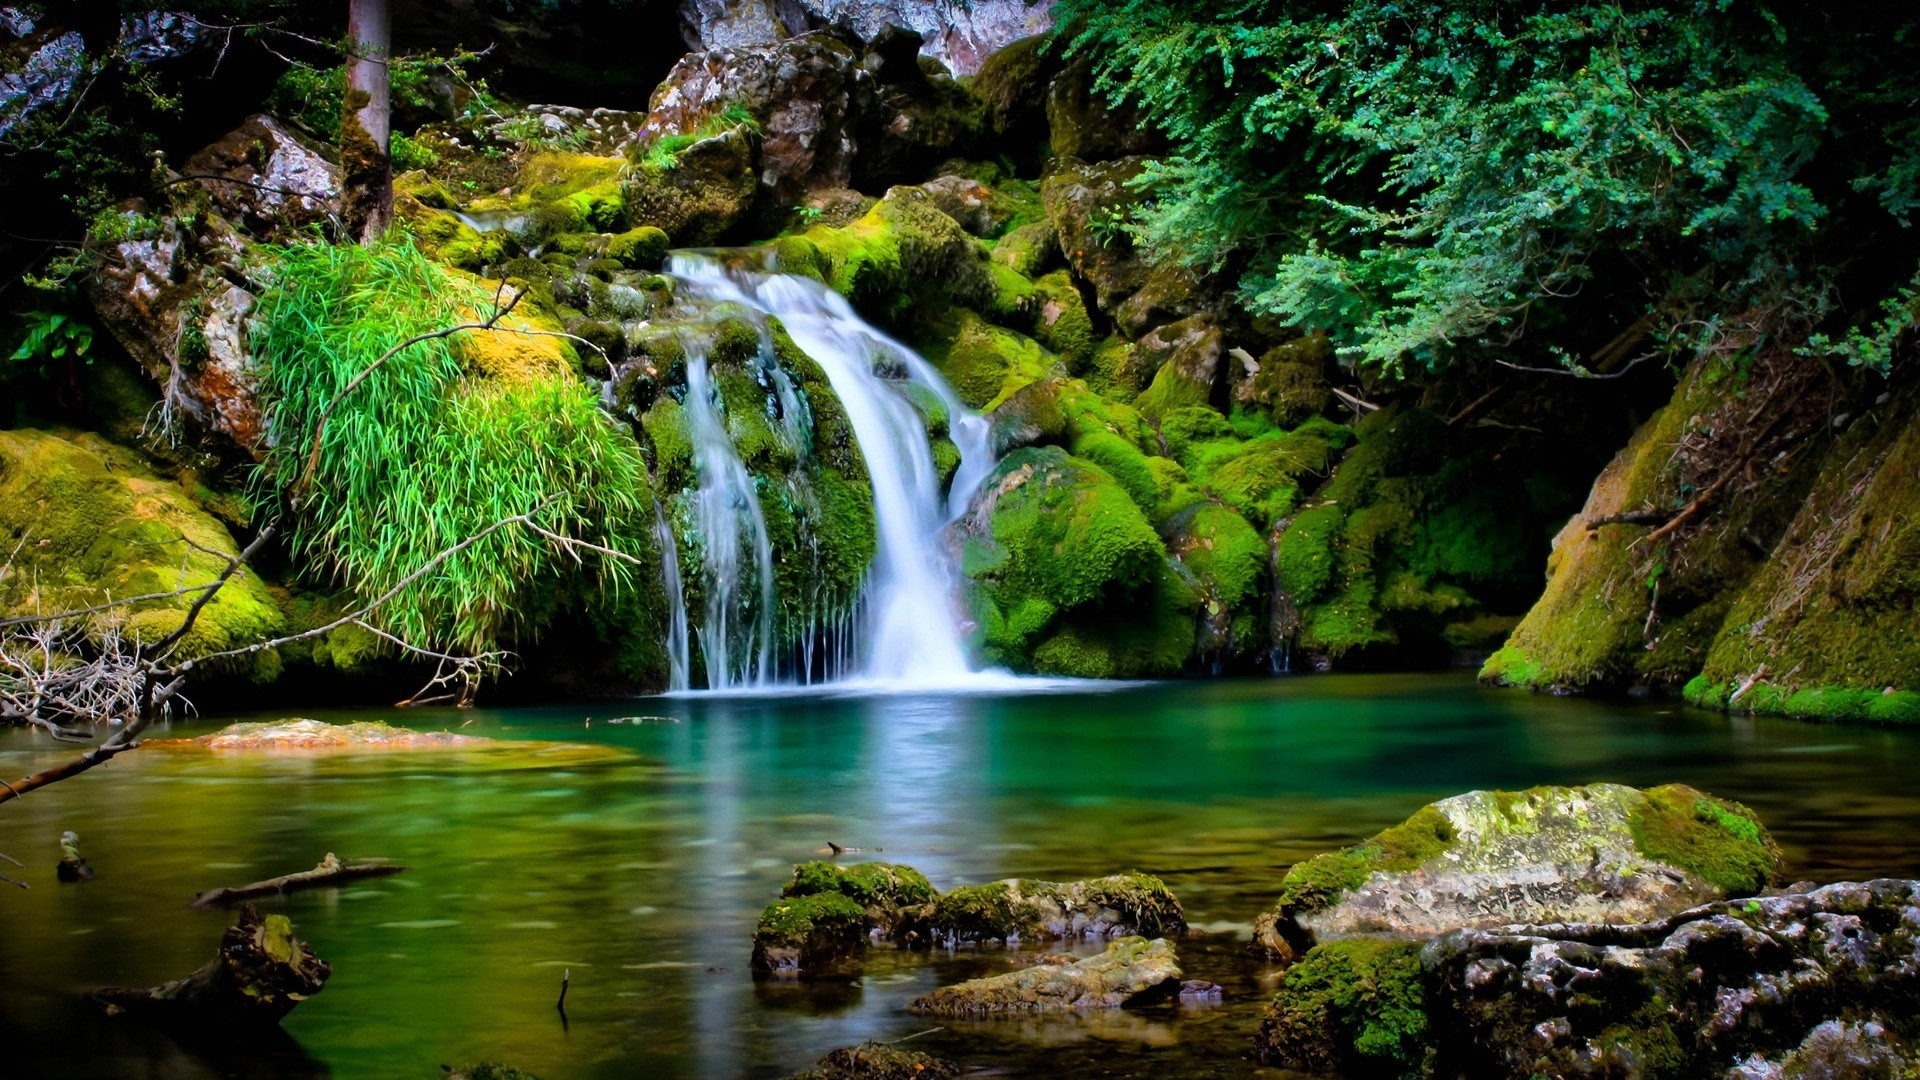 1920x1080 Explore Waterfall Wallpaper, Desktop Wallpapers, and more!